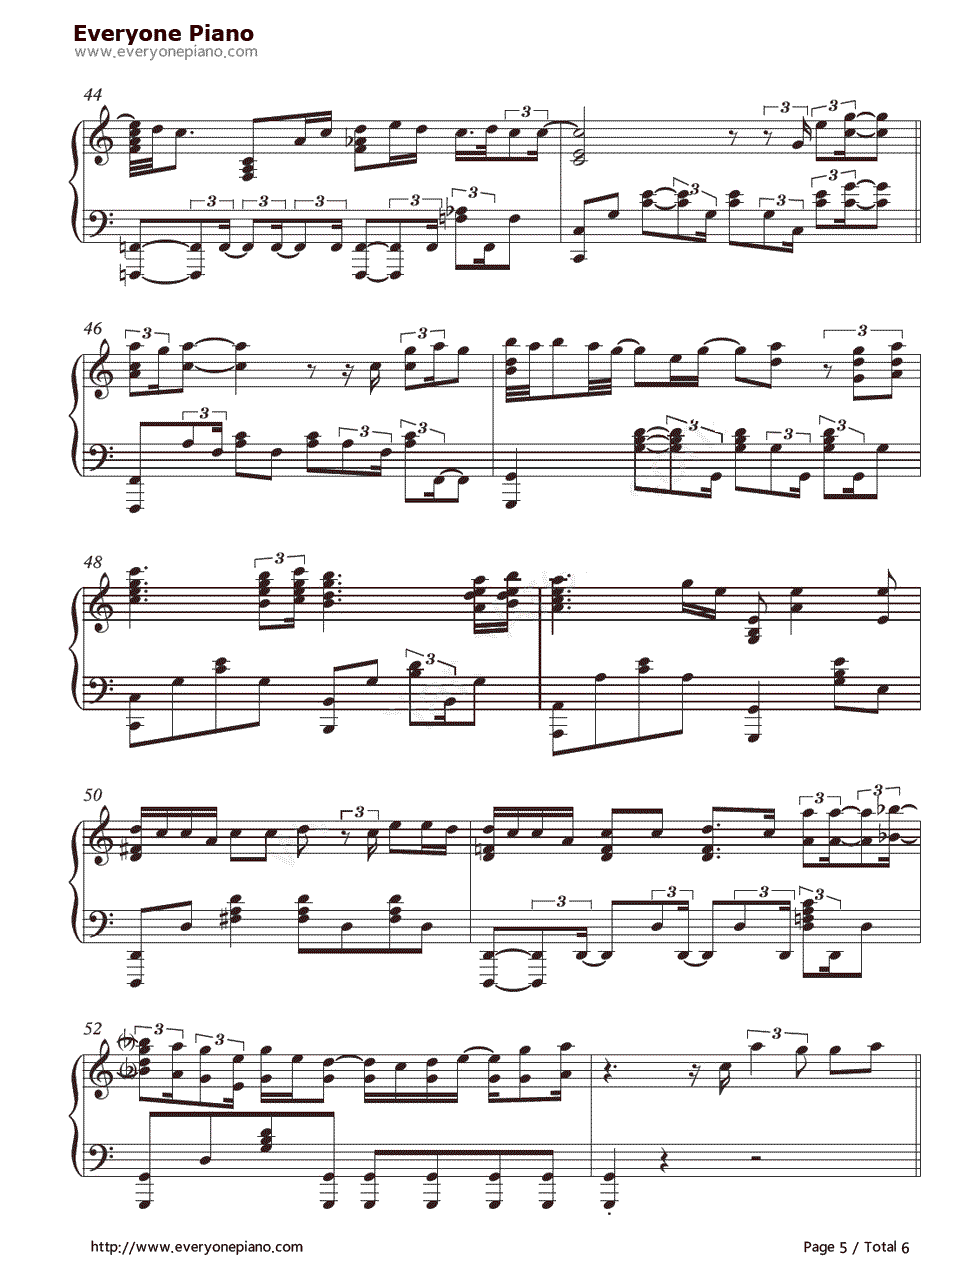 When I Was Your Man-Bruno Mars Stave Preview 5-Free Piano Sheet Music u0026 Piano Chords